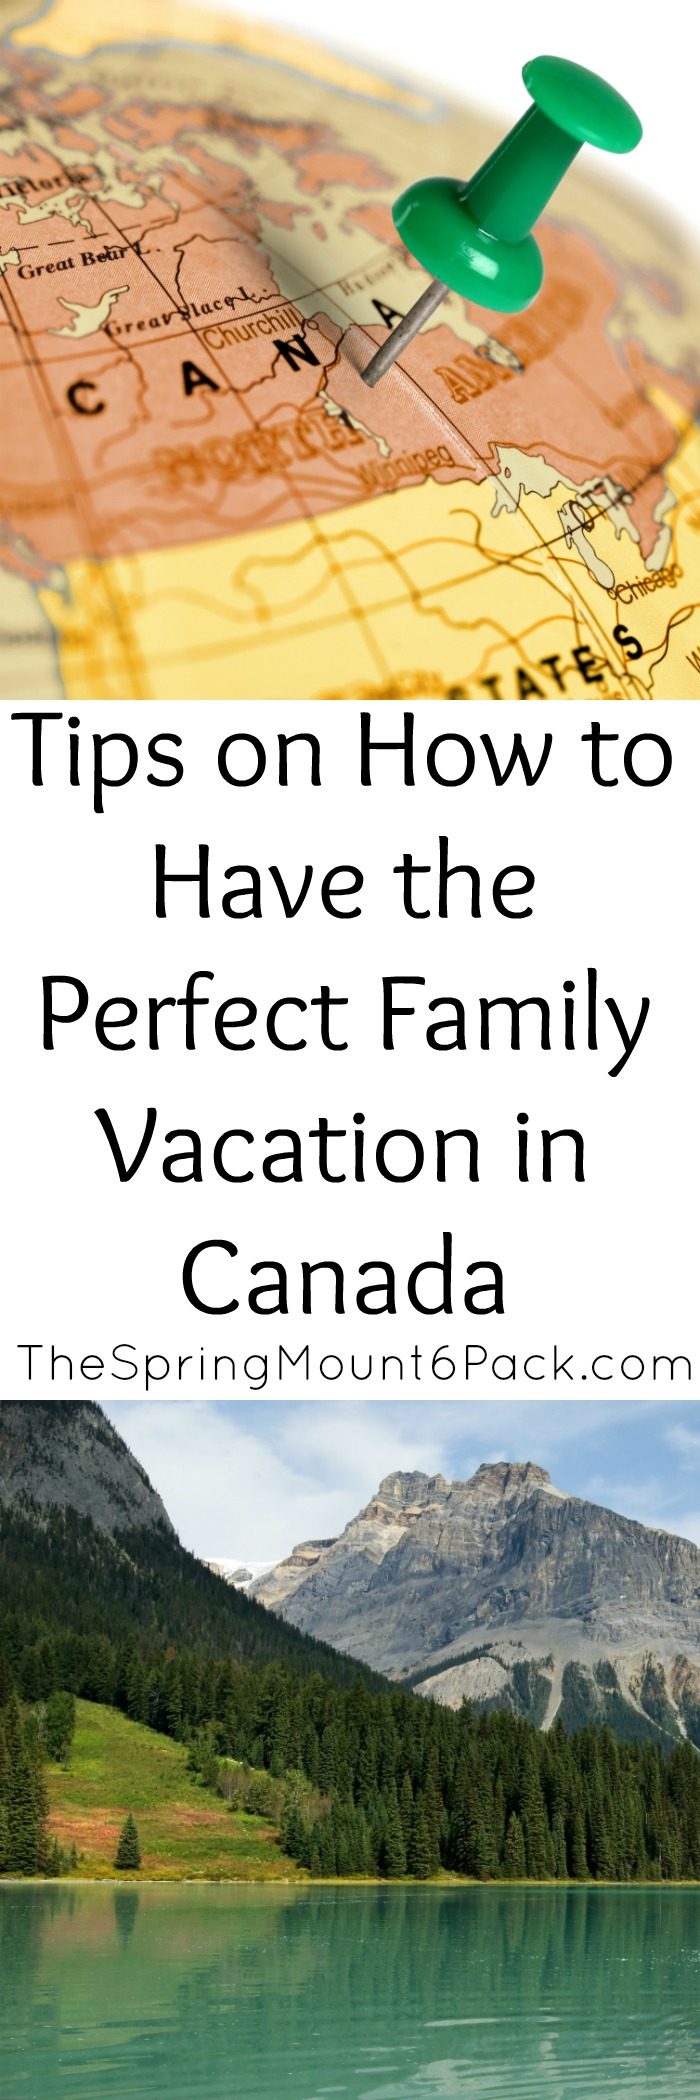 Planning a trip to Canada? Try these Tips on How to Have the Perfect Family Vacation in Canada